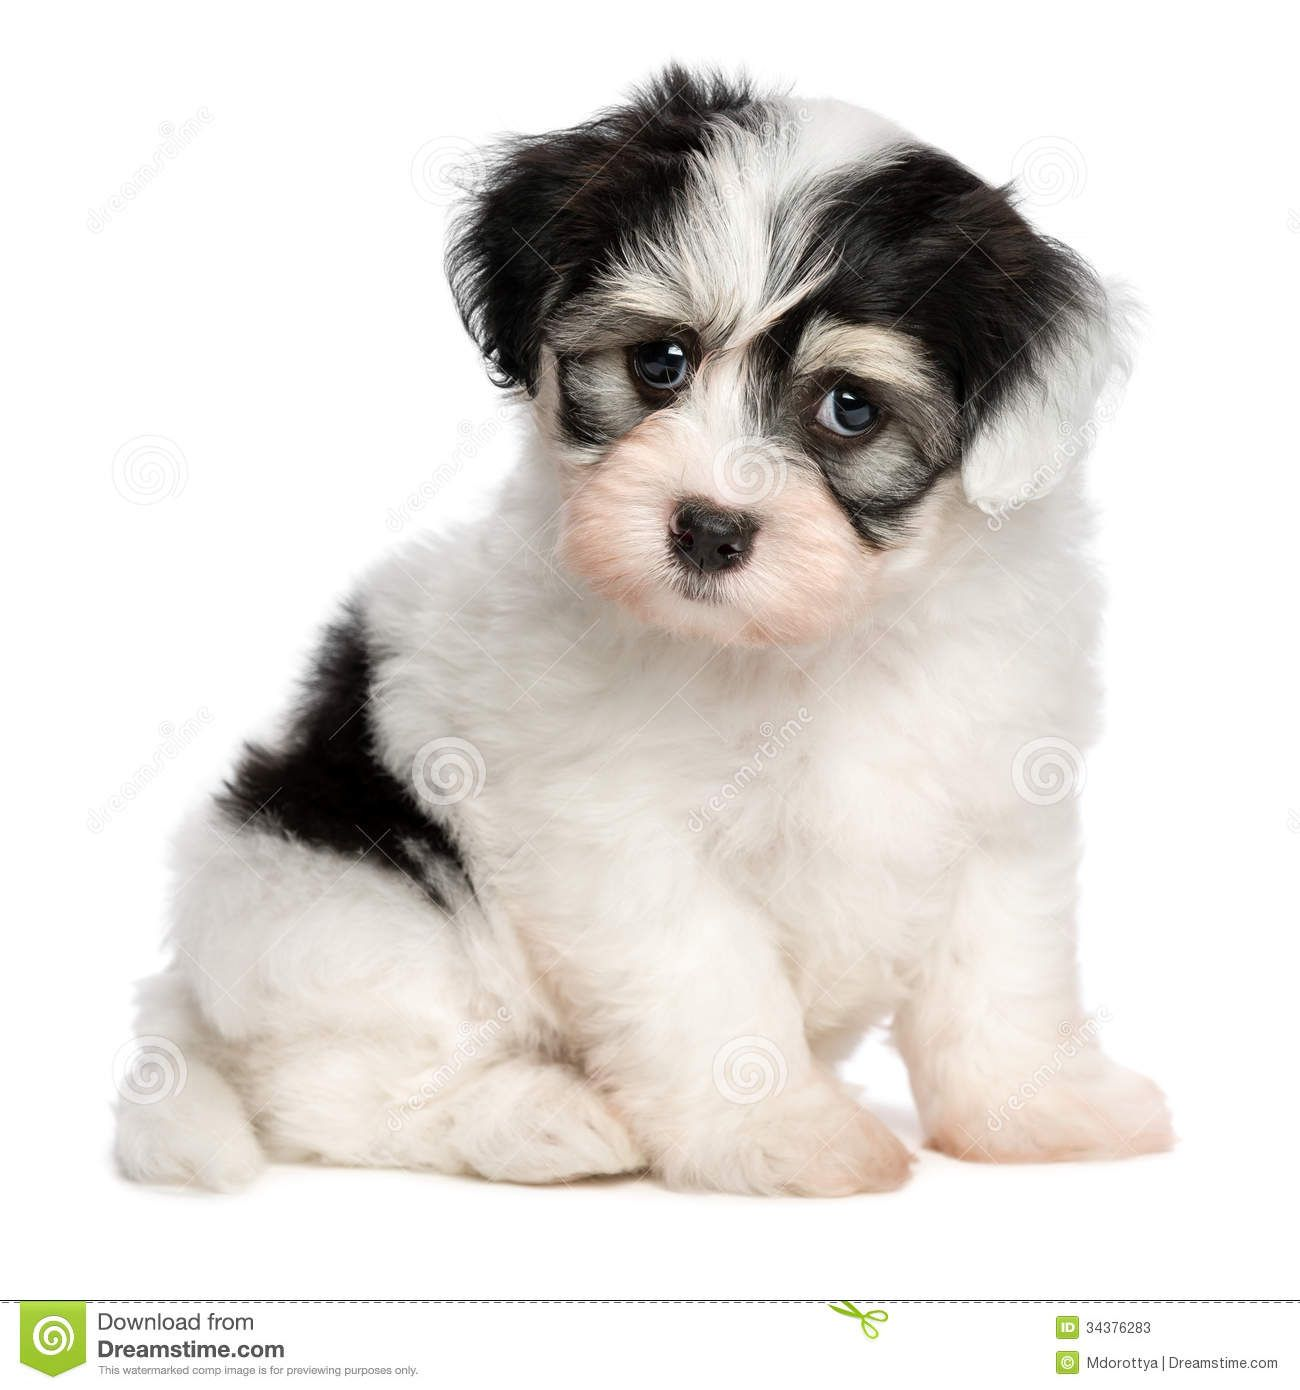 A Beautiful Sitting White Spotted Havanese Puppy Dog Stock Photos